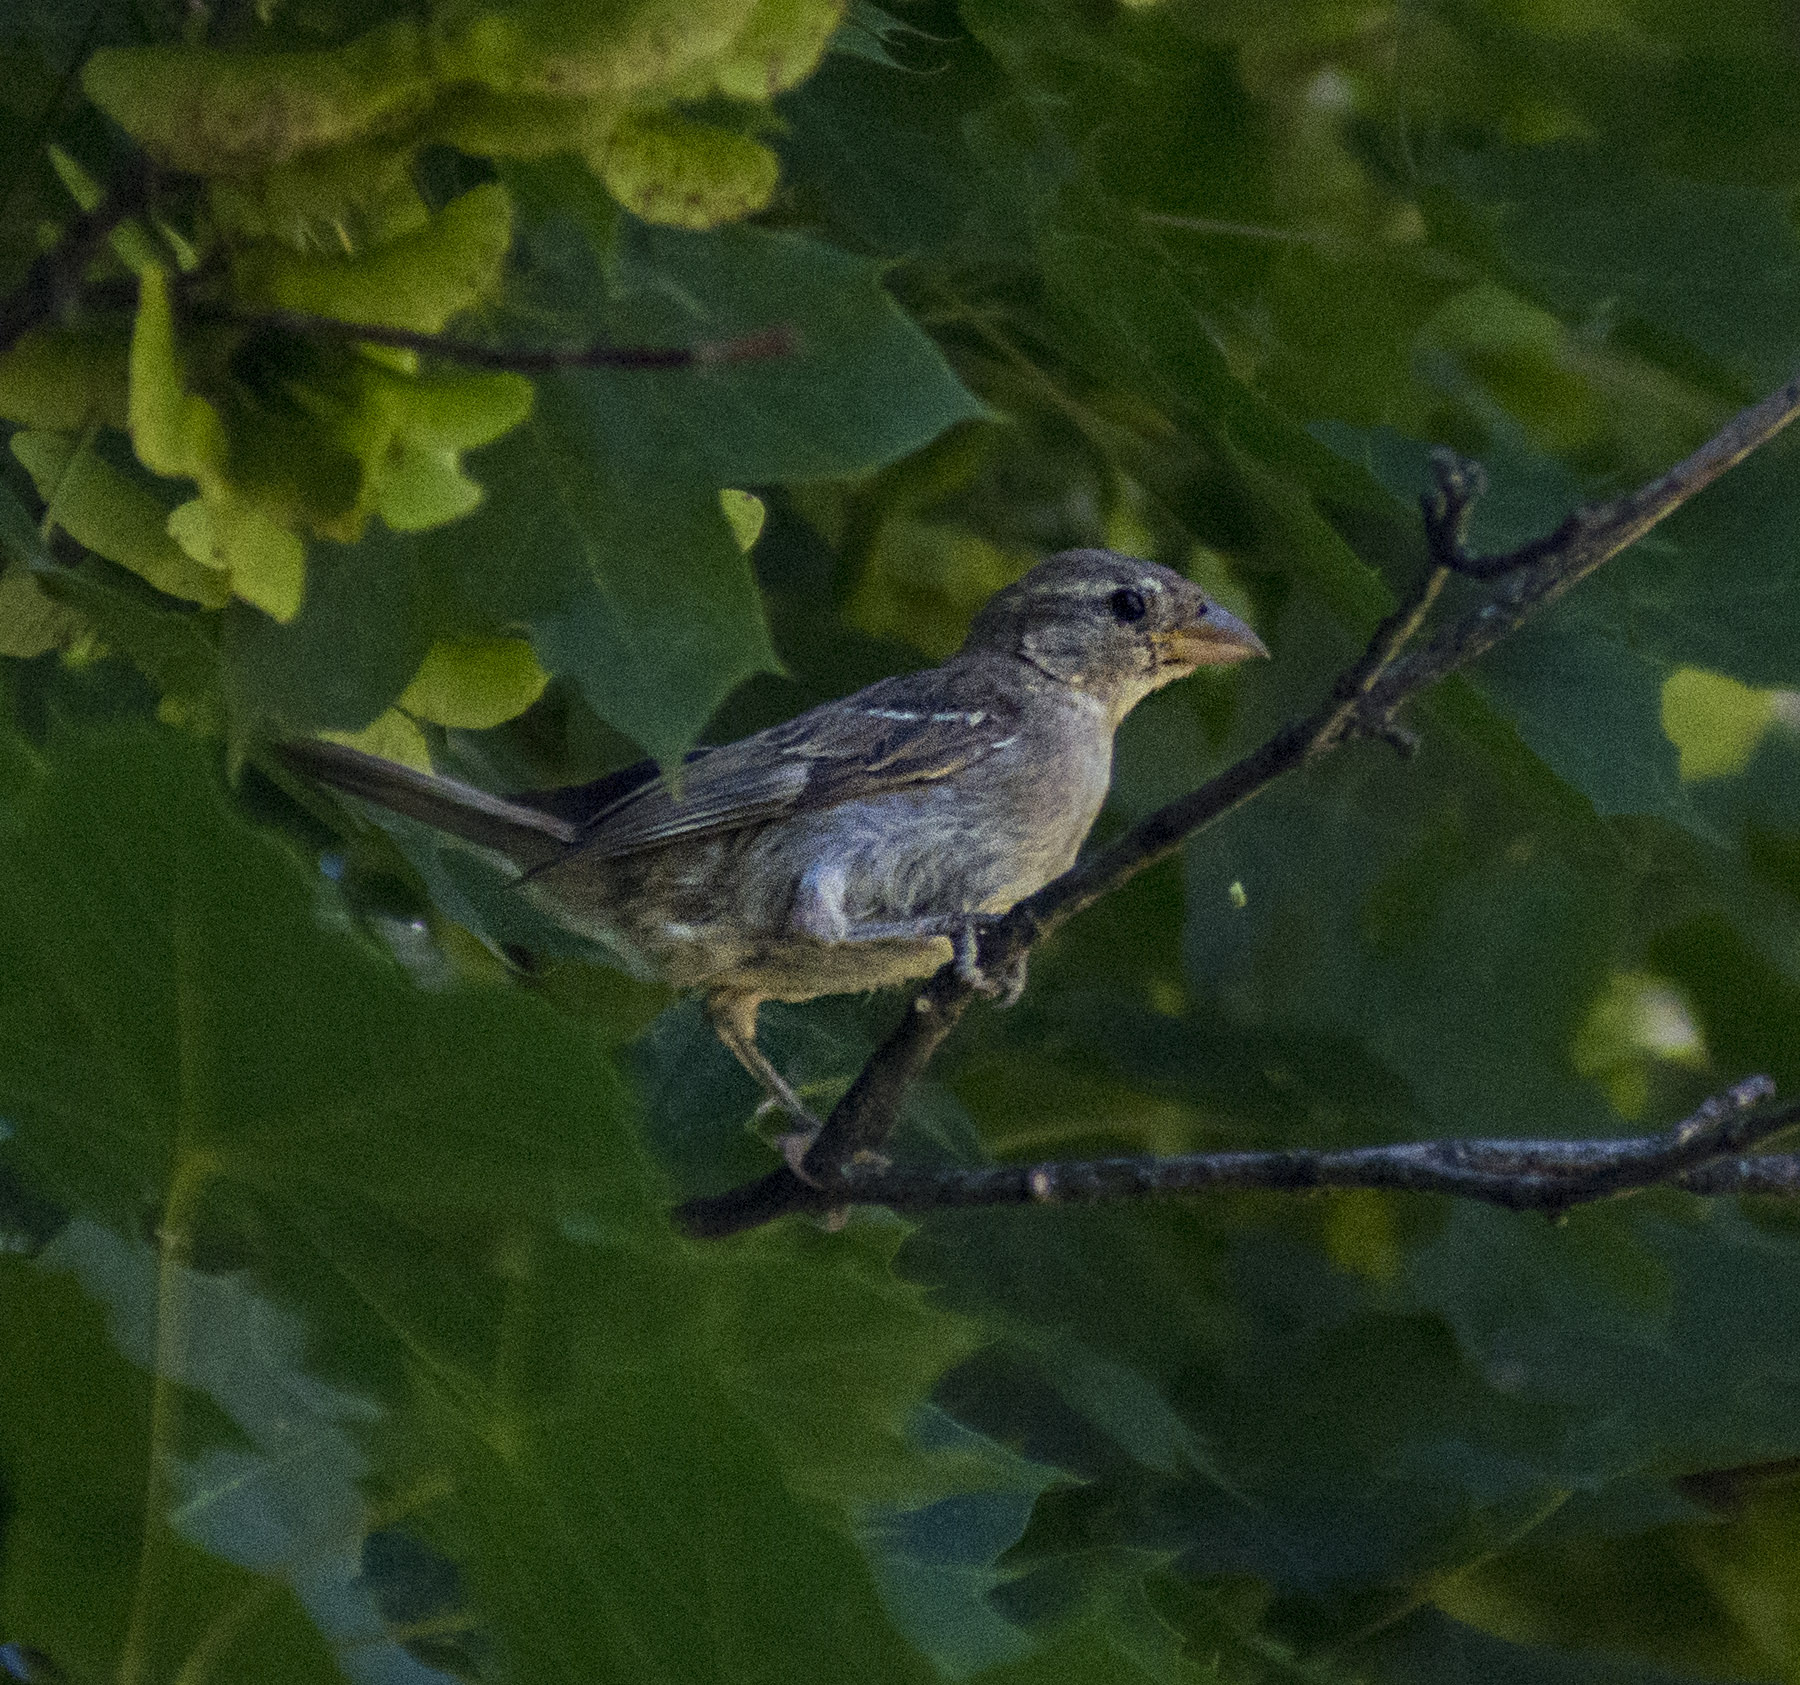 Female Black-headed Grosbeak was staying deep in the foliage of a maple tree, watching but calling no attention to herself.